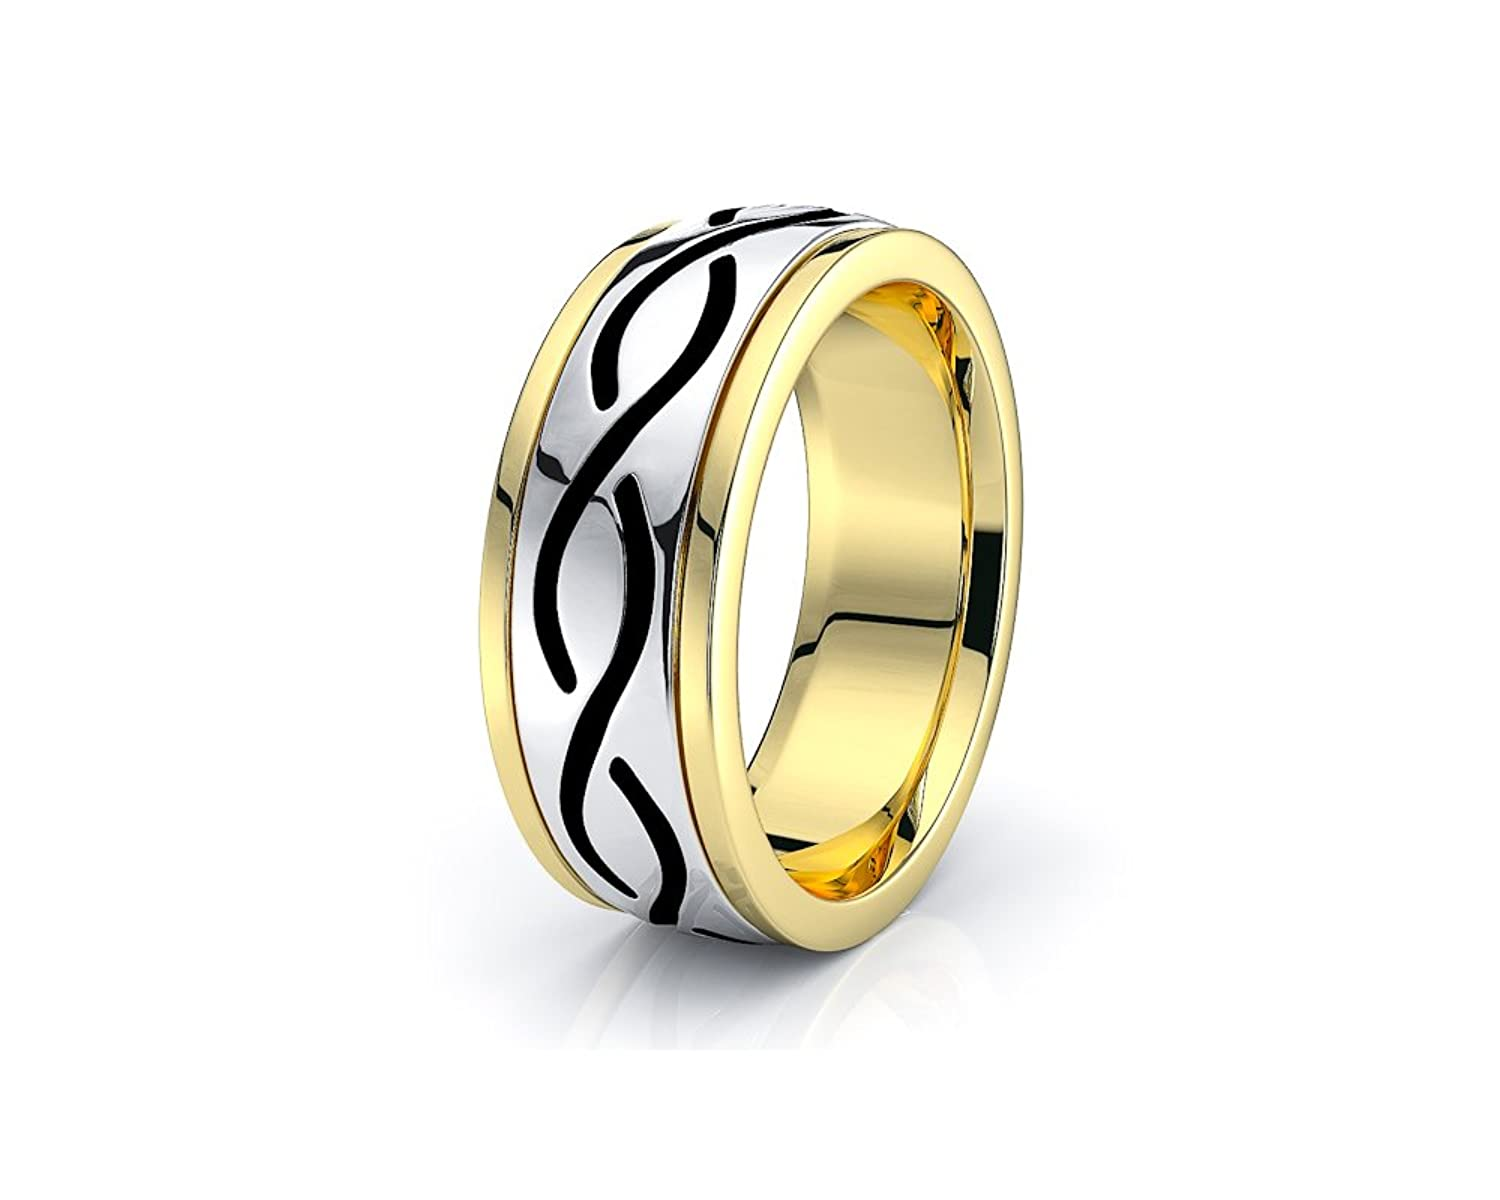 10K White Yellow Gold 7mm Infinity Celtic Knot Wedding Band Rings Black Nano Plated